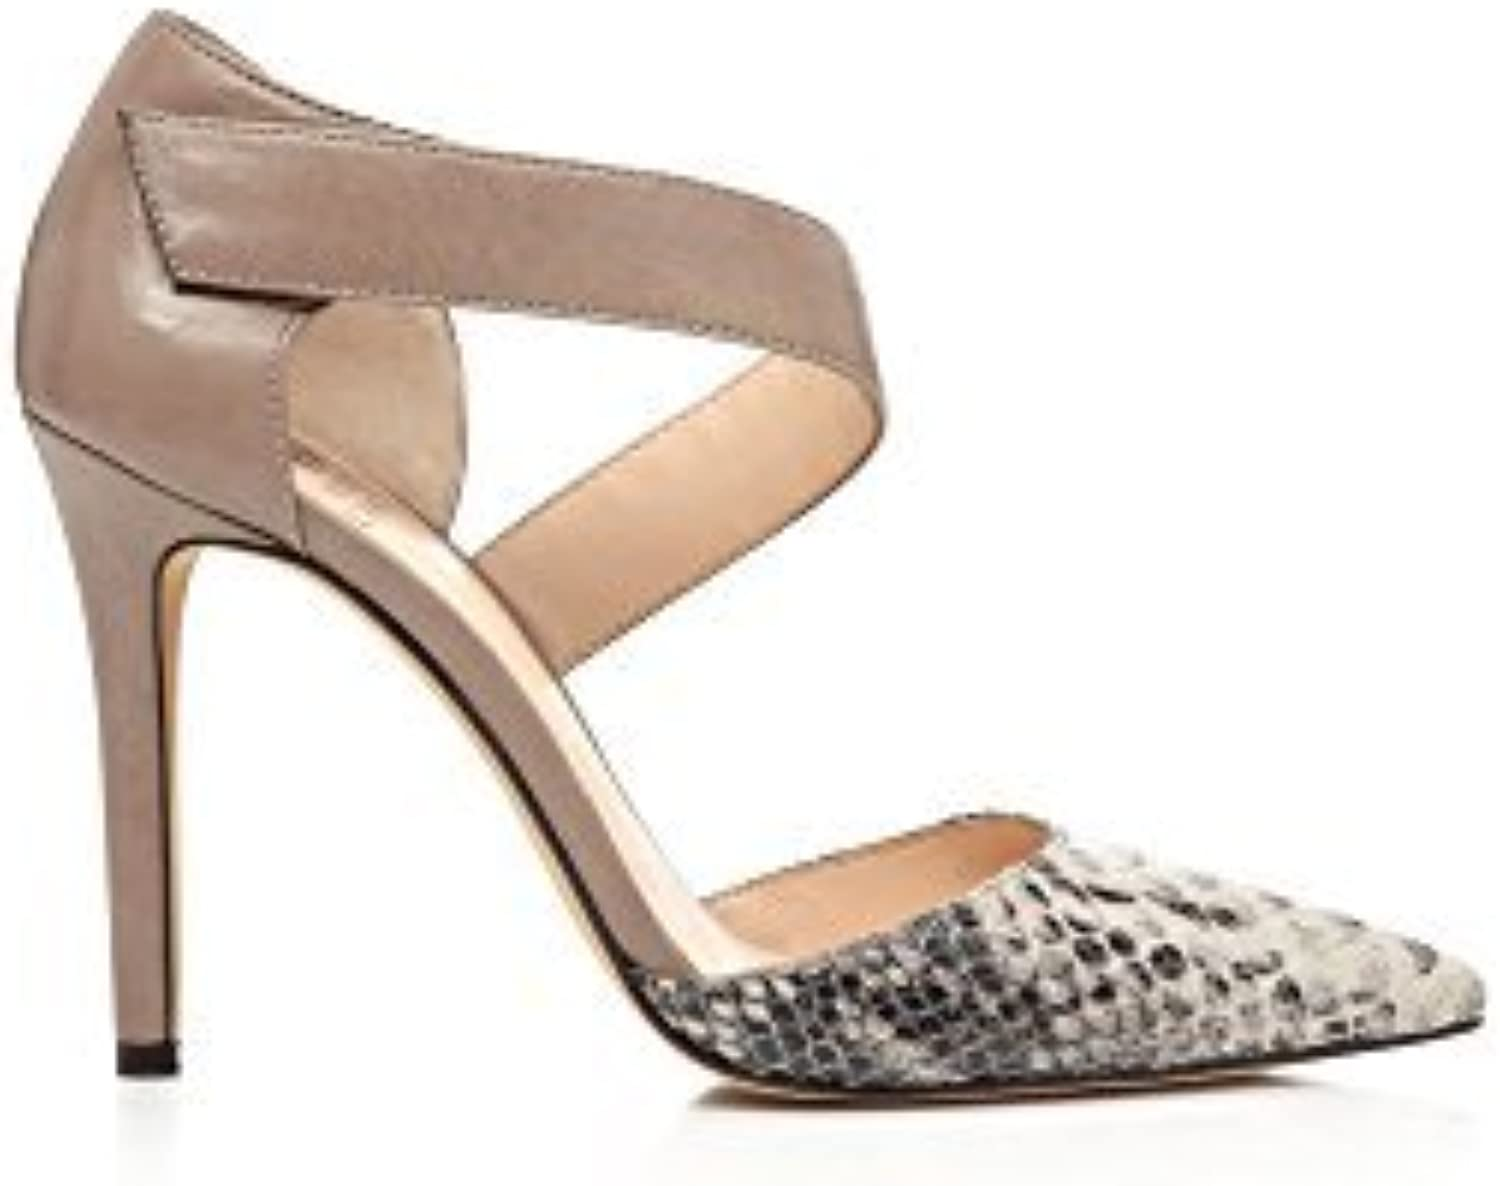 Vince Camuto Carlotte Women's Heels Tabby Gry Toast Taup Size 11 M